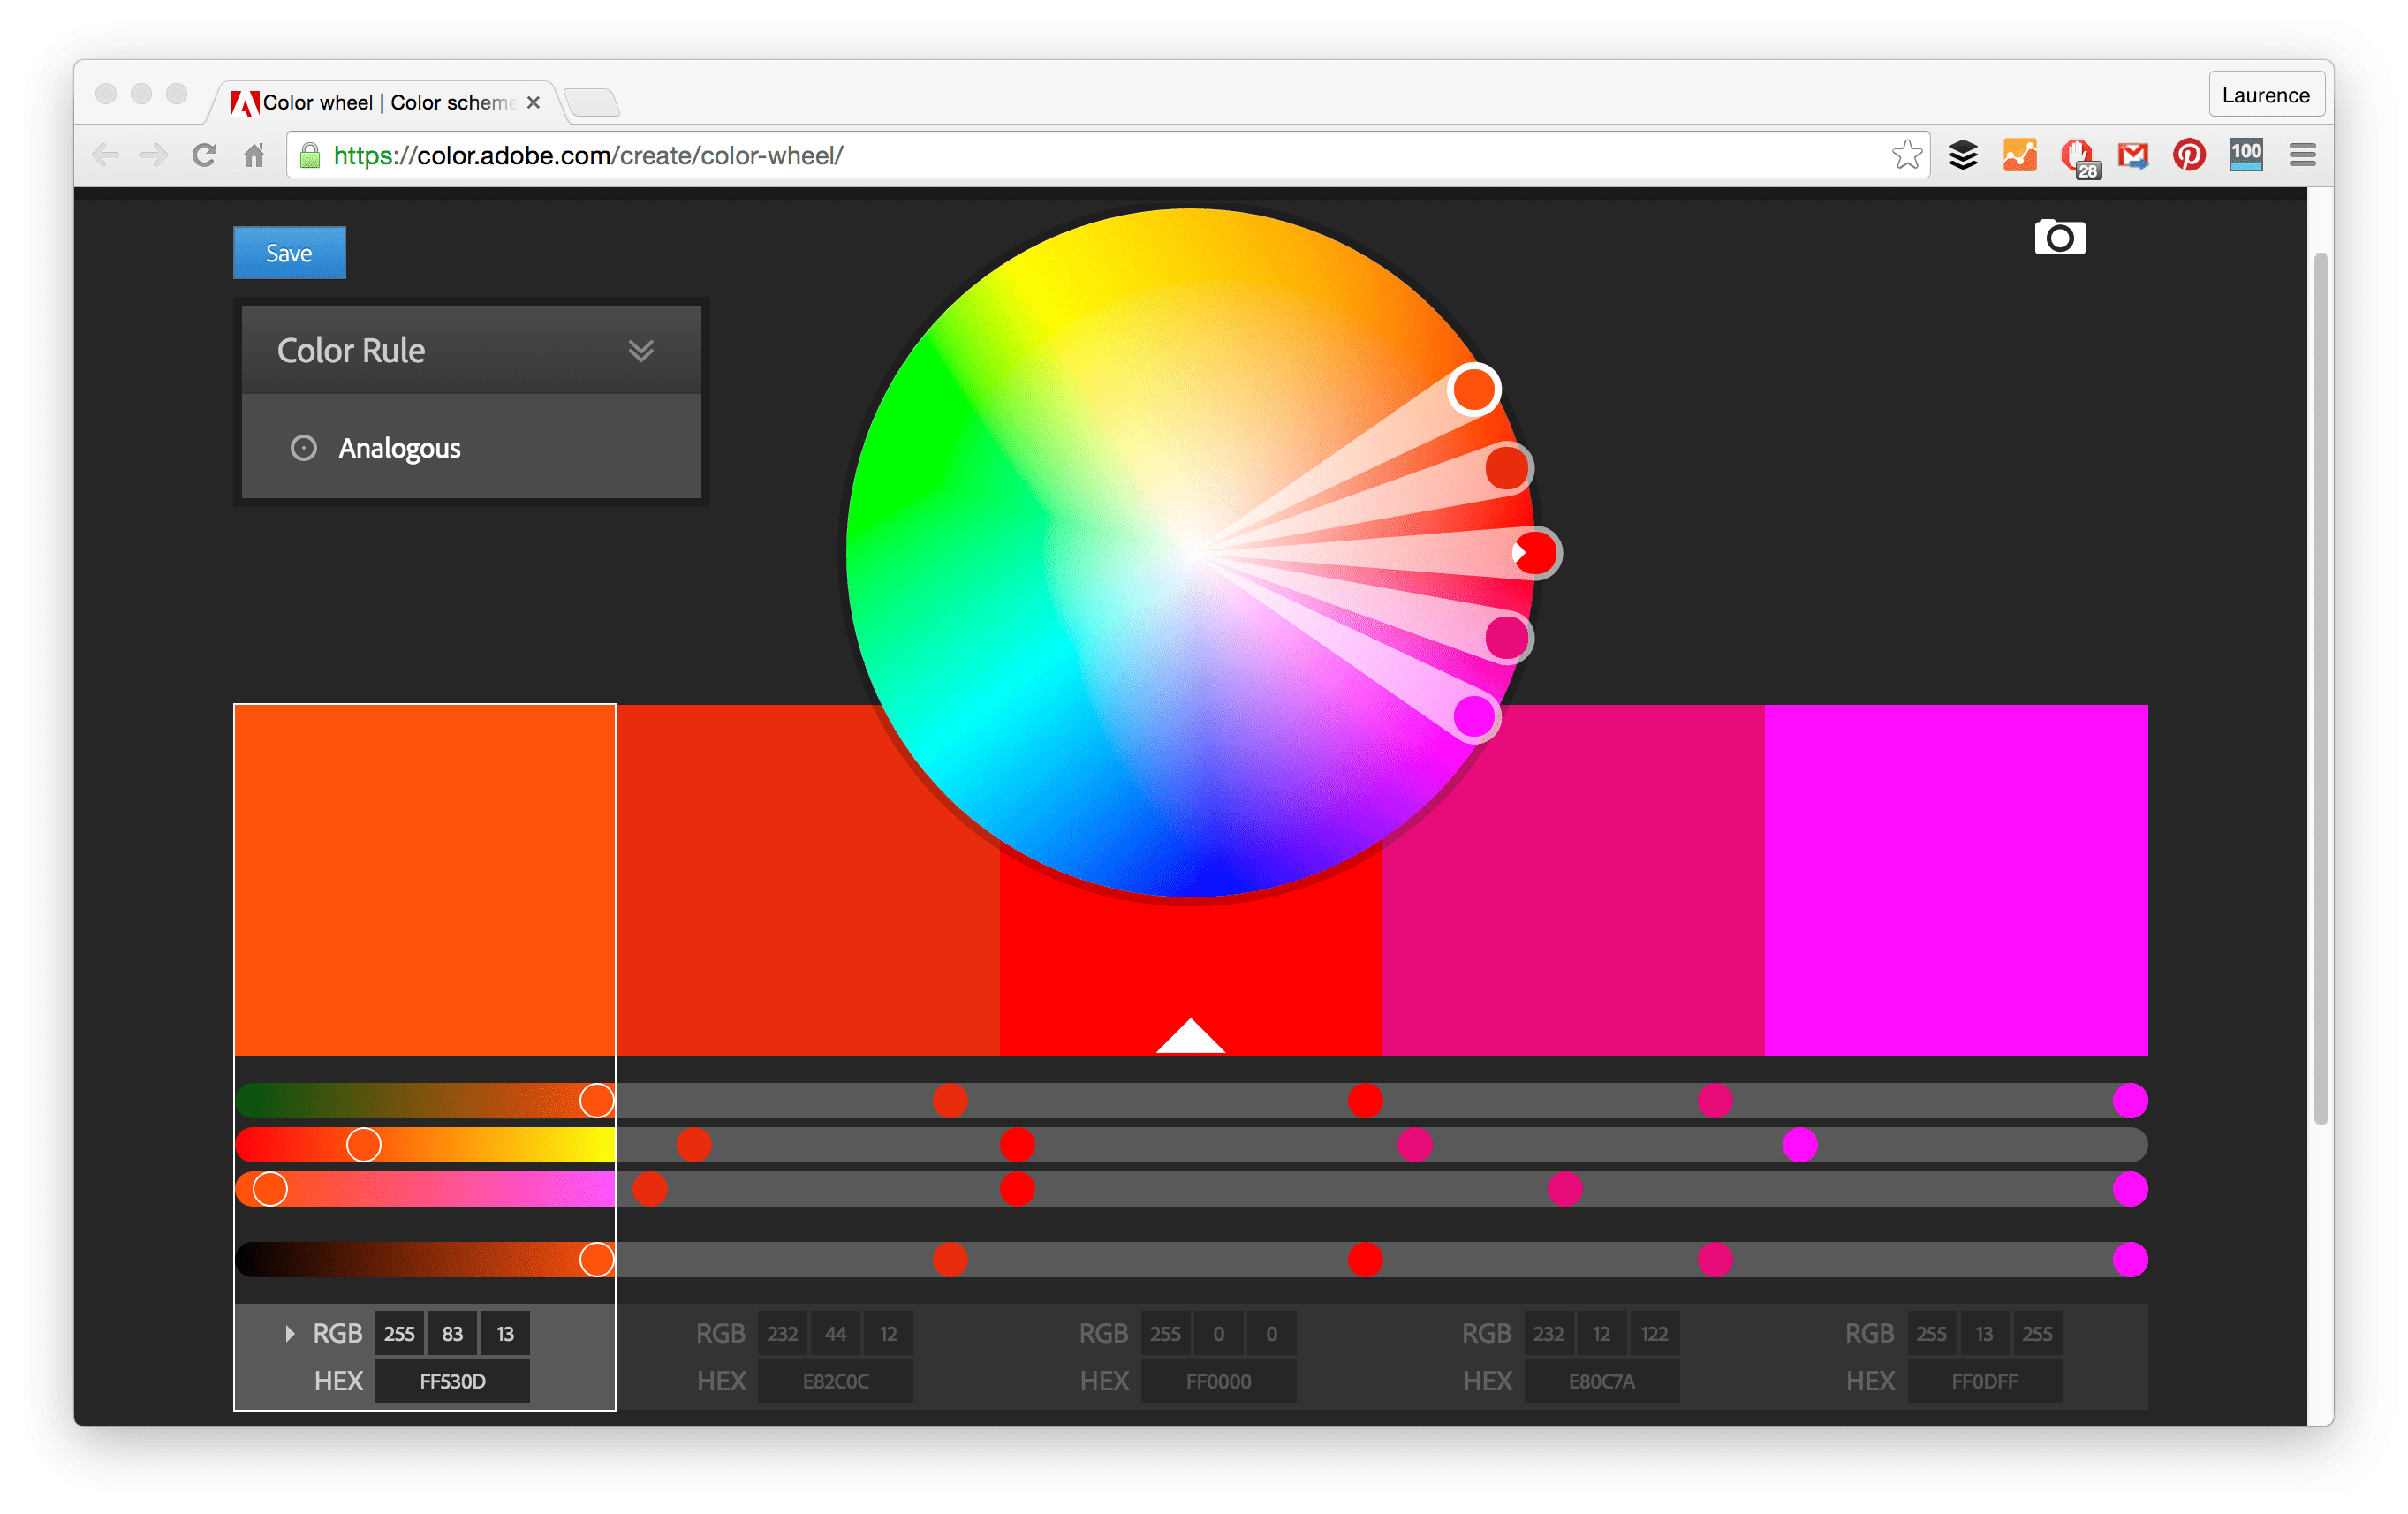 Color adobe online - Adobe Color Wheel